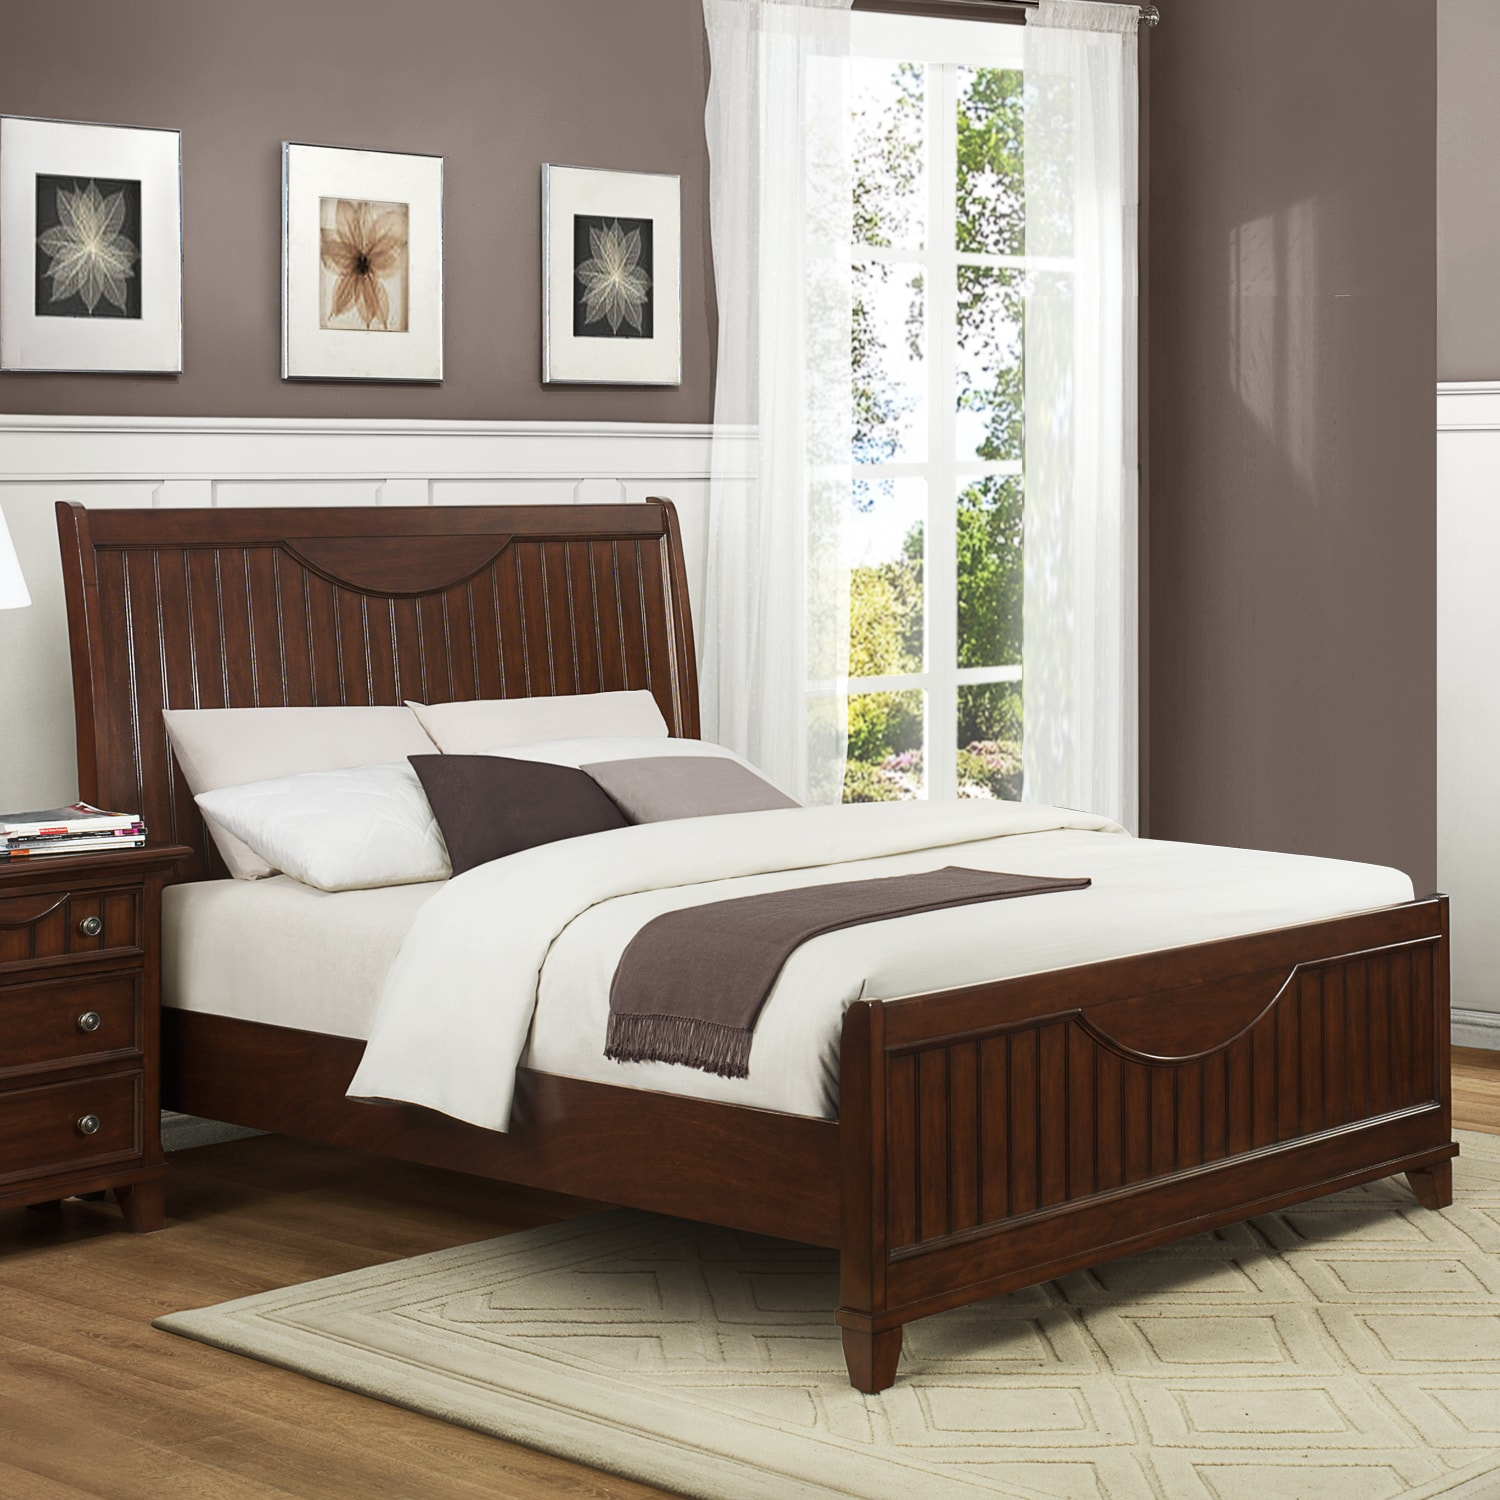 Alderson Warm Cherry Brown Cottage King-size Bed - Thumbnail 0